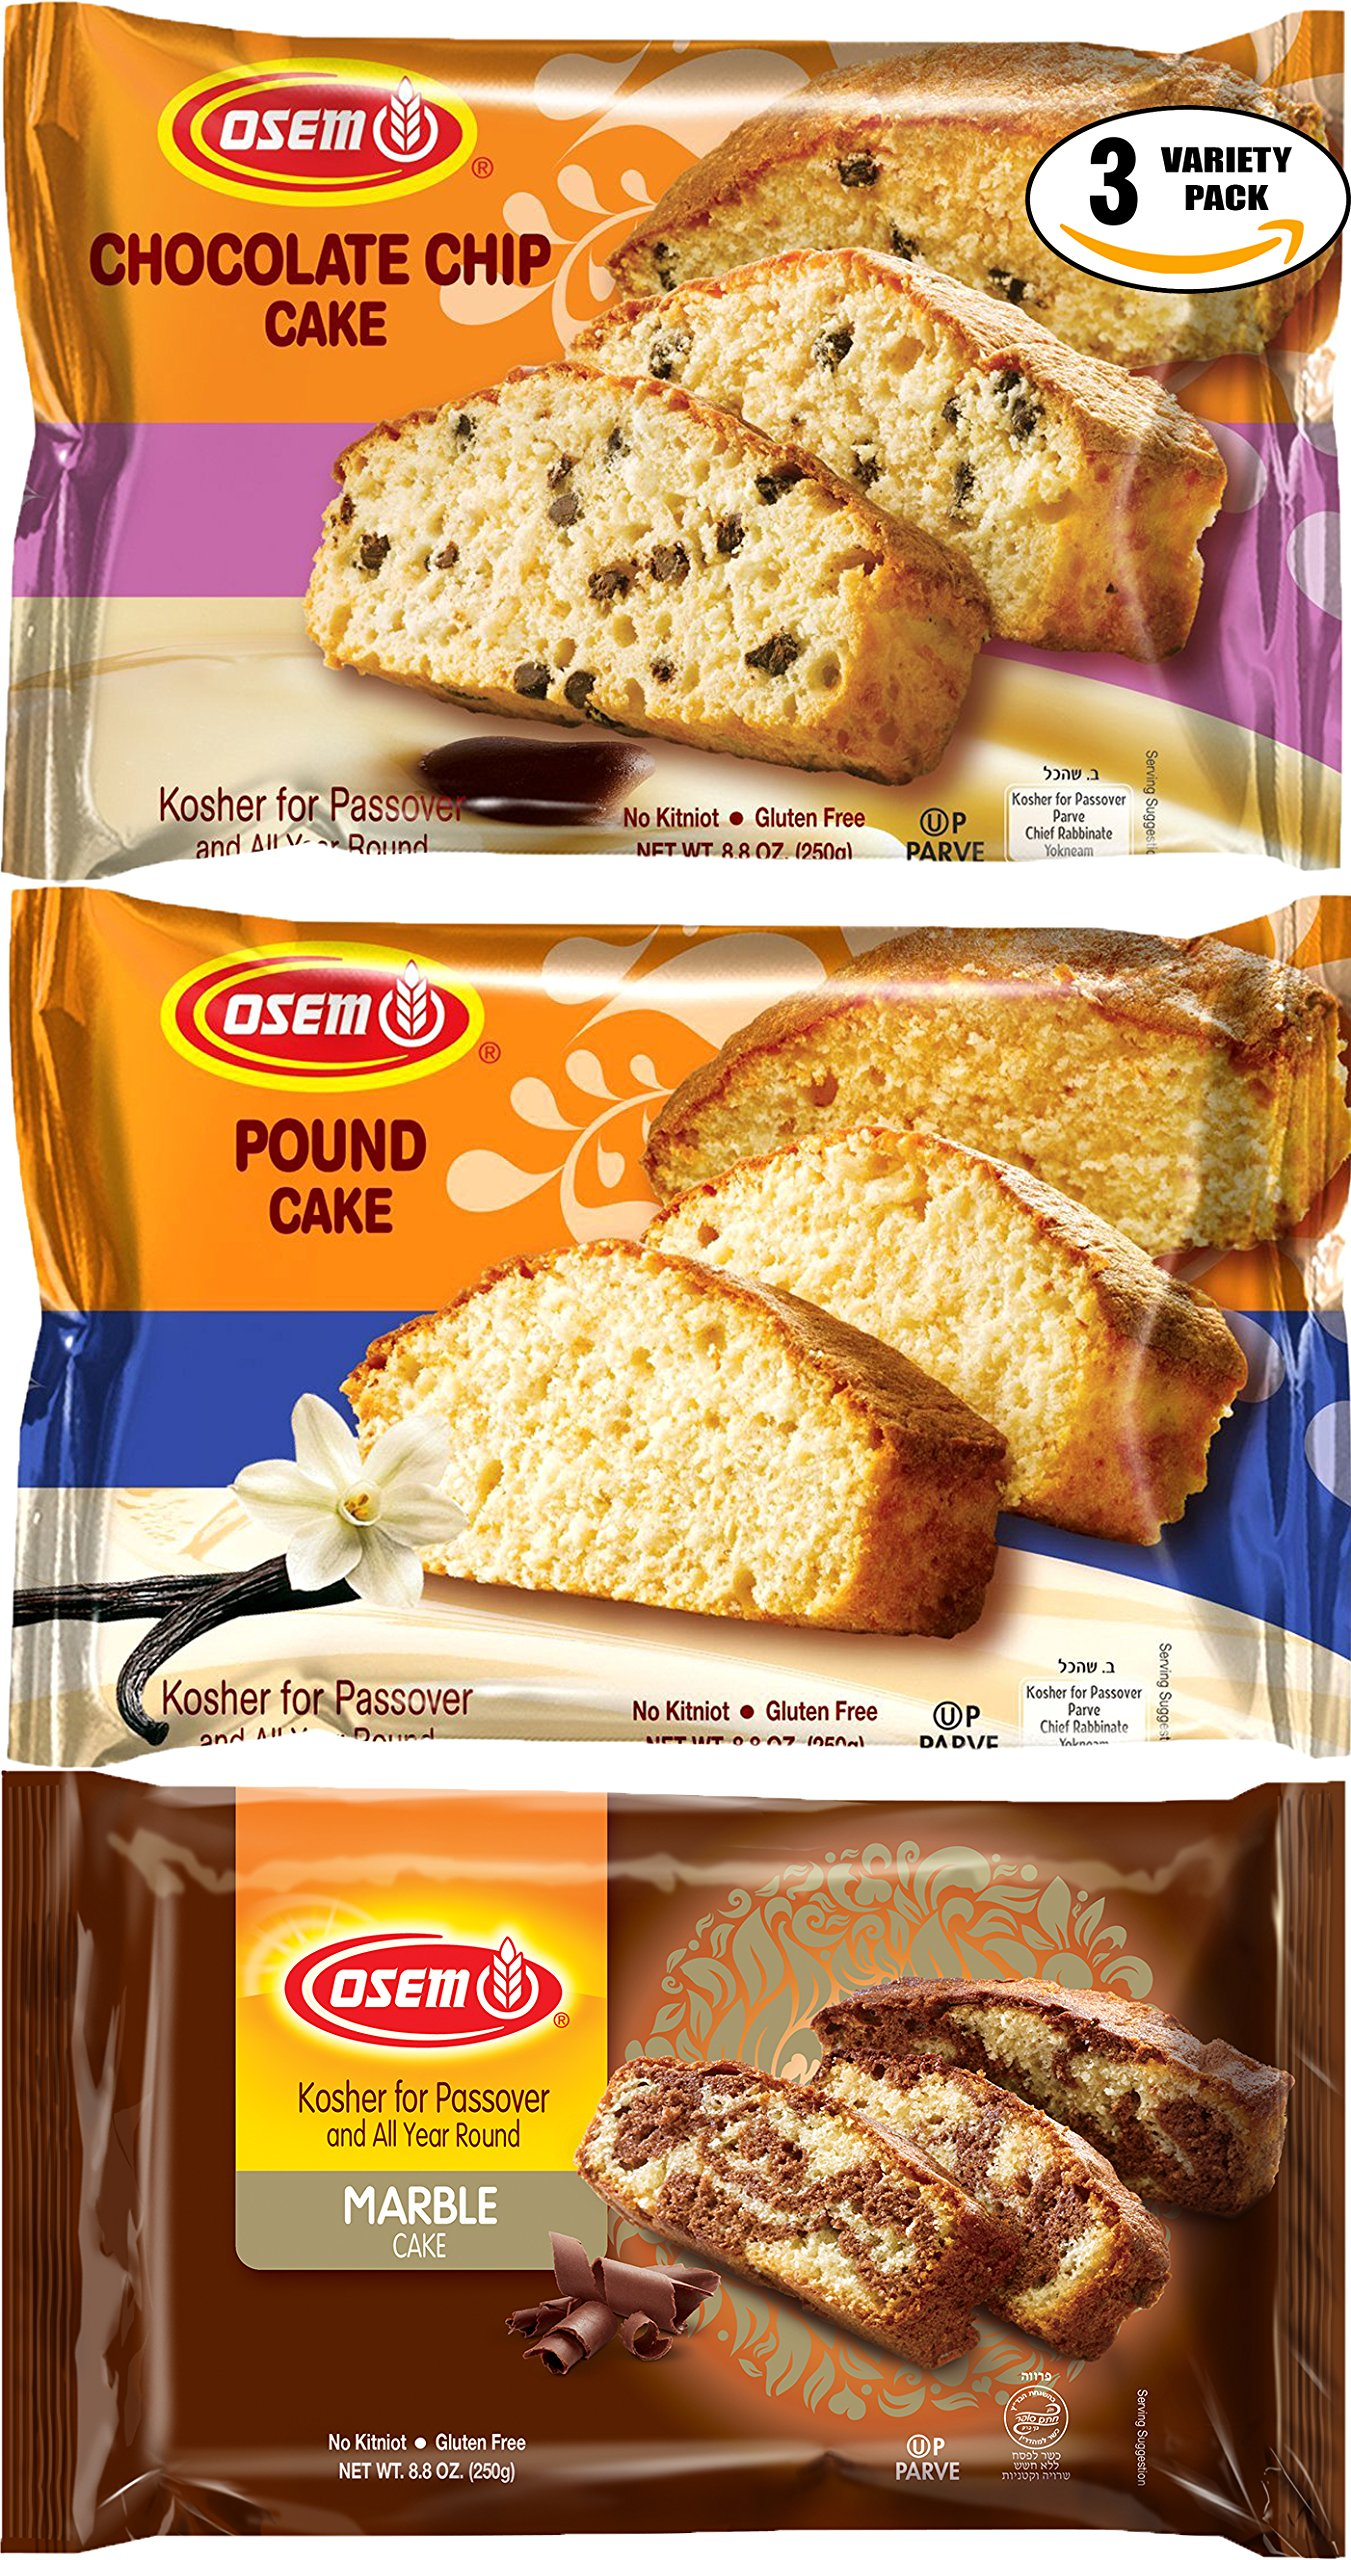 Osem Passover Cakes (Chocolate Chip/Marble/Pound Variety Special, Variety 3-Pack Special)